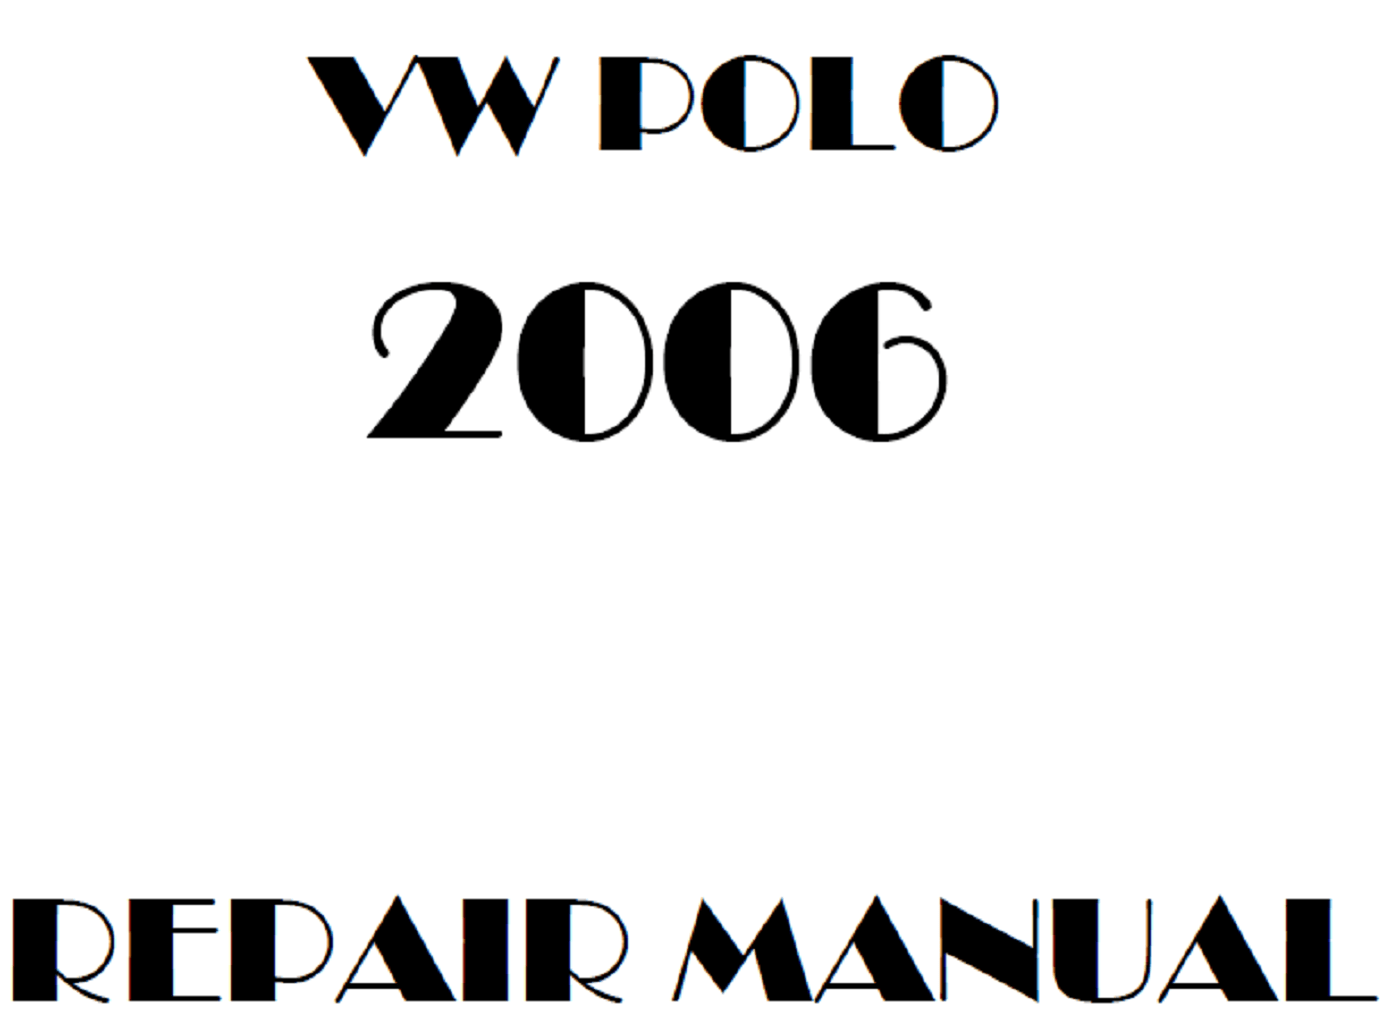 2006 Volkswagen Polo repair manual